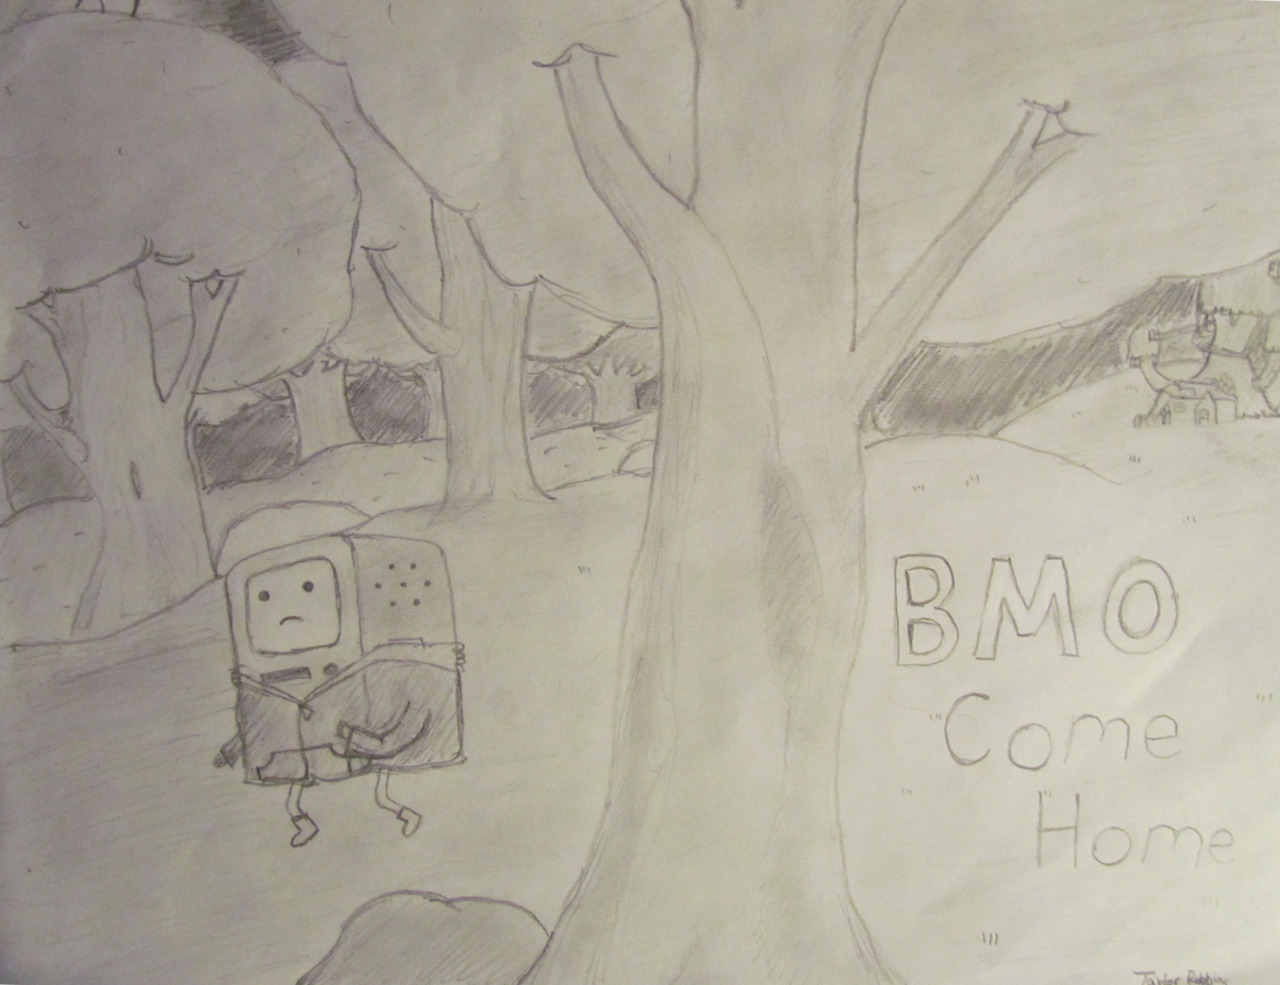 'A typical child running away from home story.' Don't leave BMO! Thanks trobbins fro the submission.